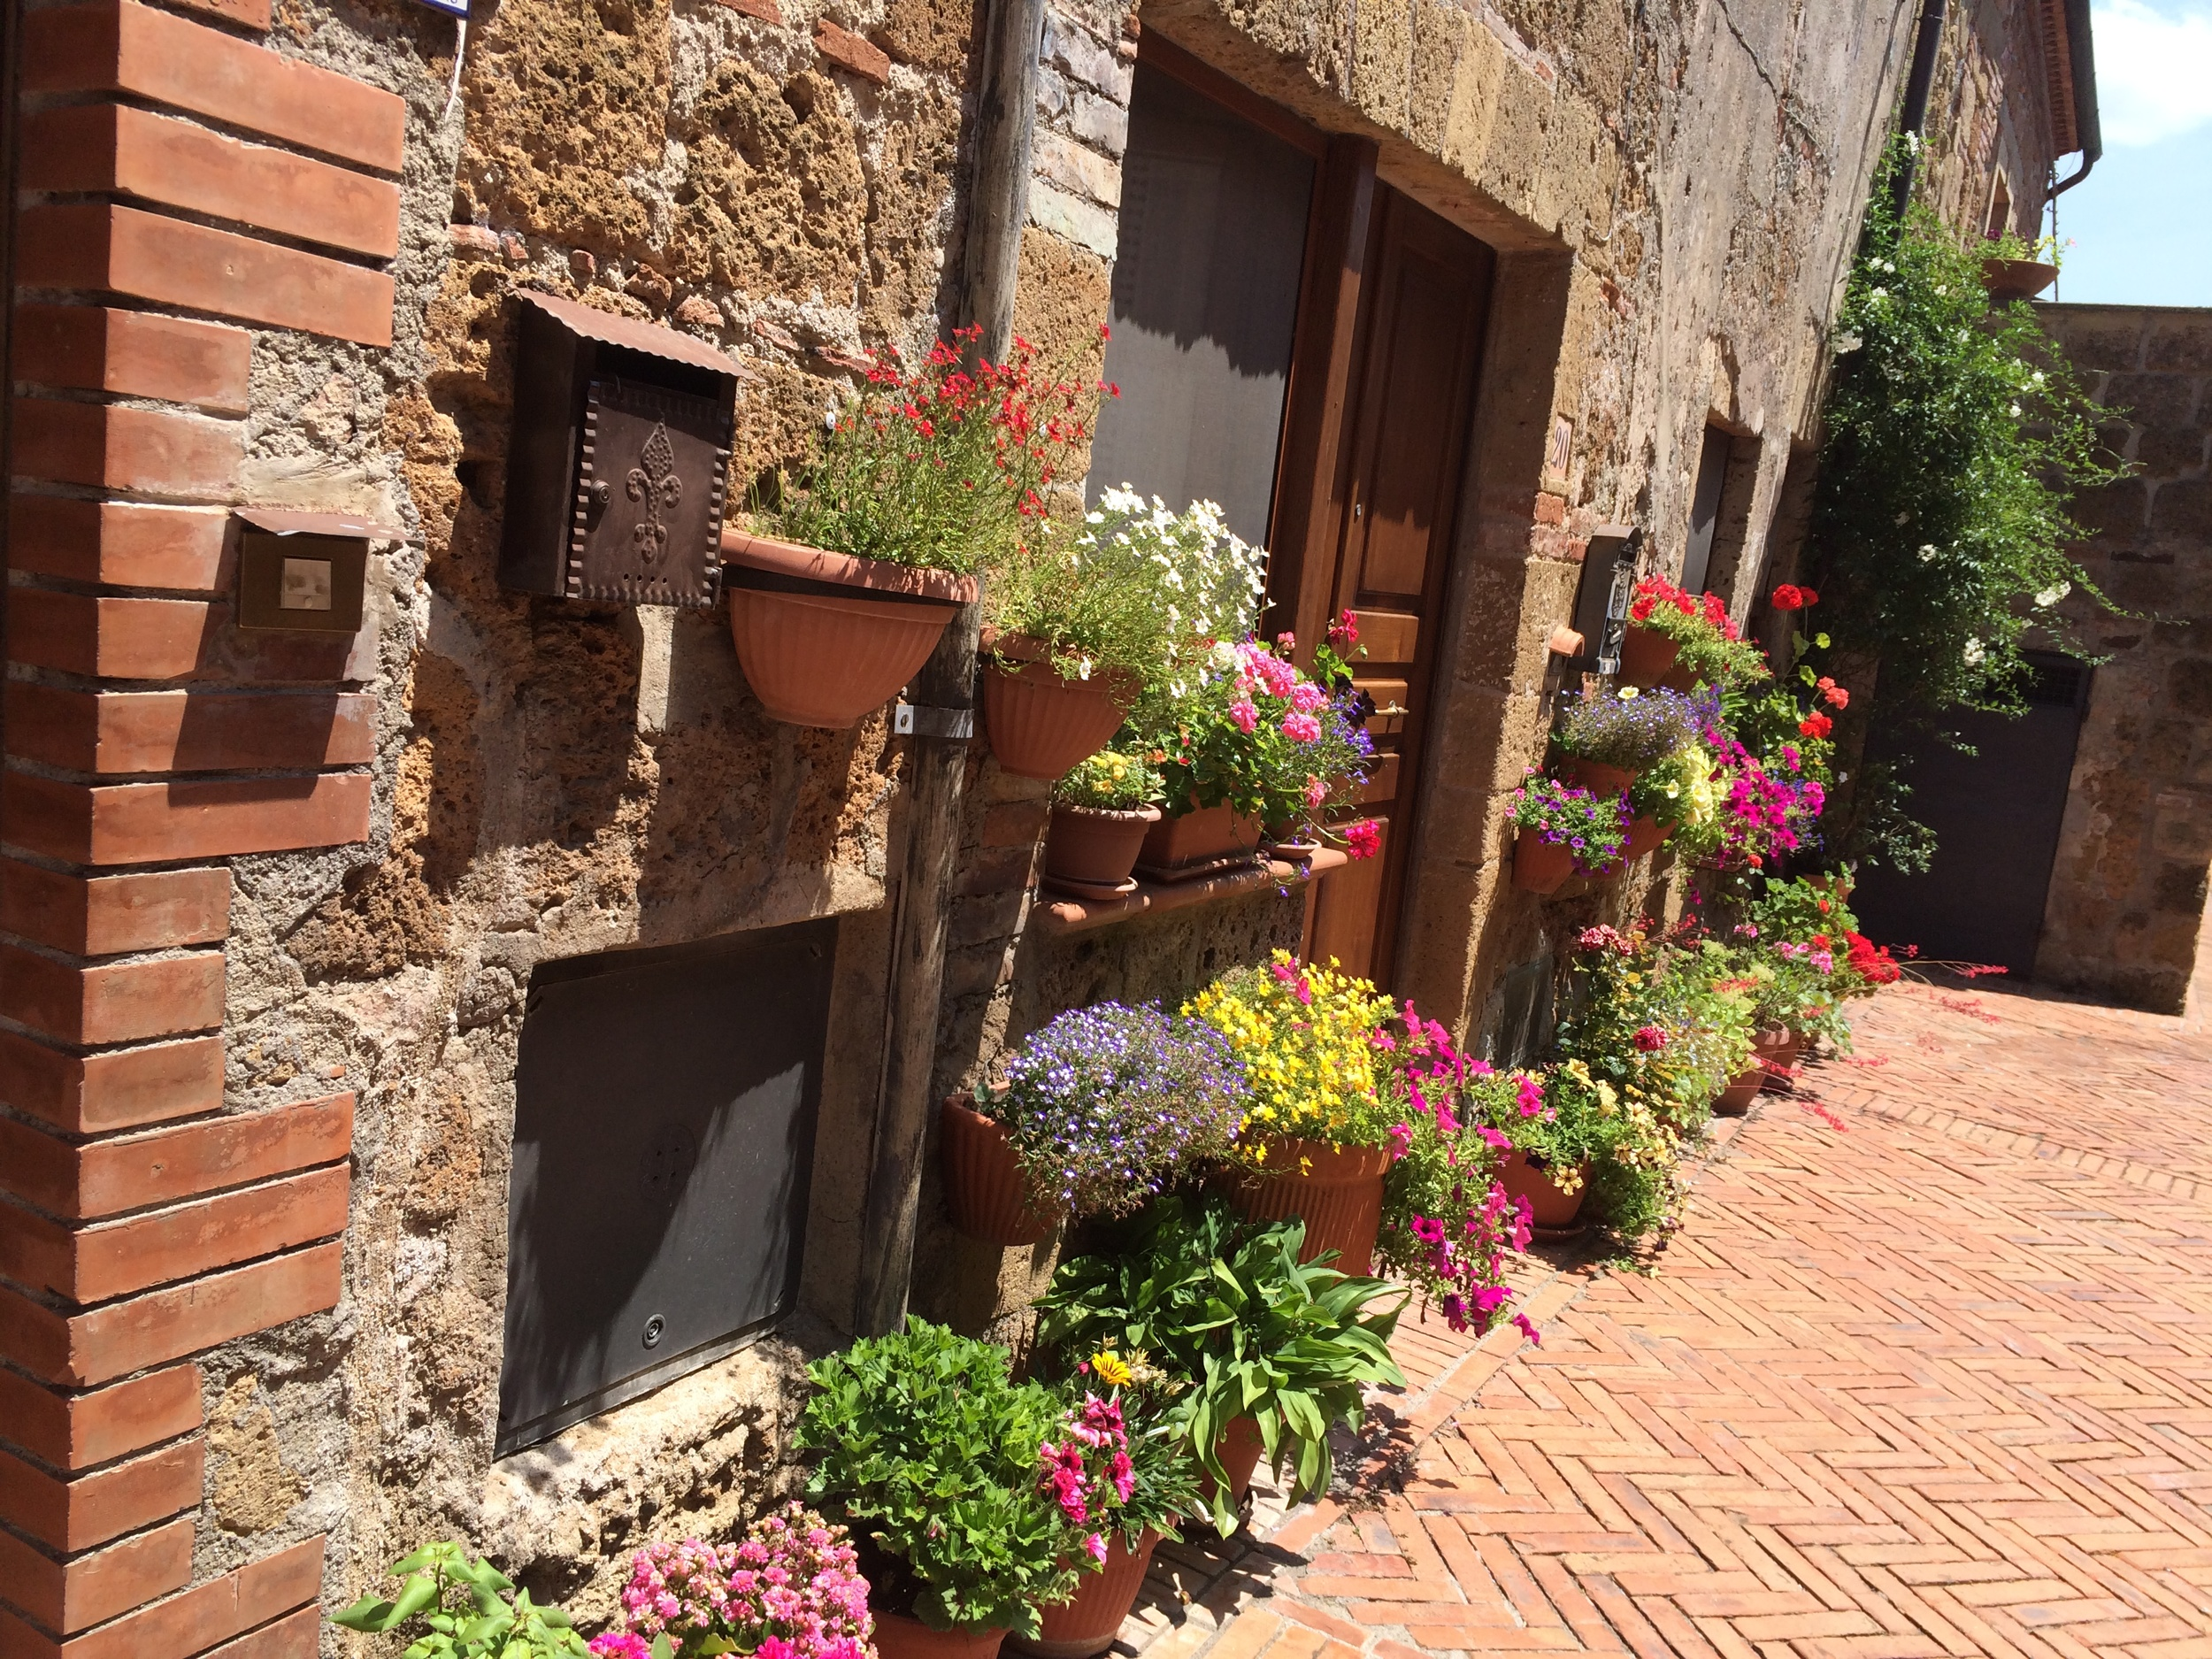 Street scene from Sovana - the brick was laid in a Medici herringbone pattern